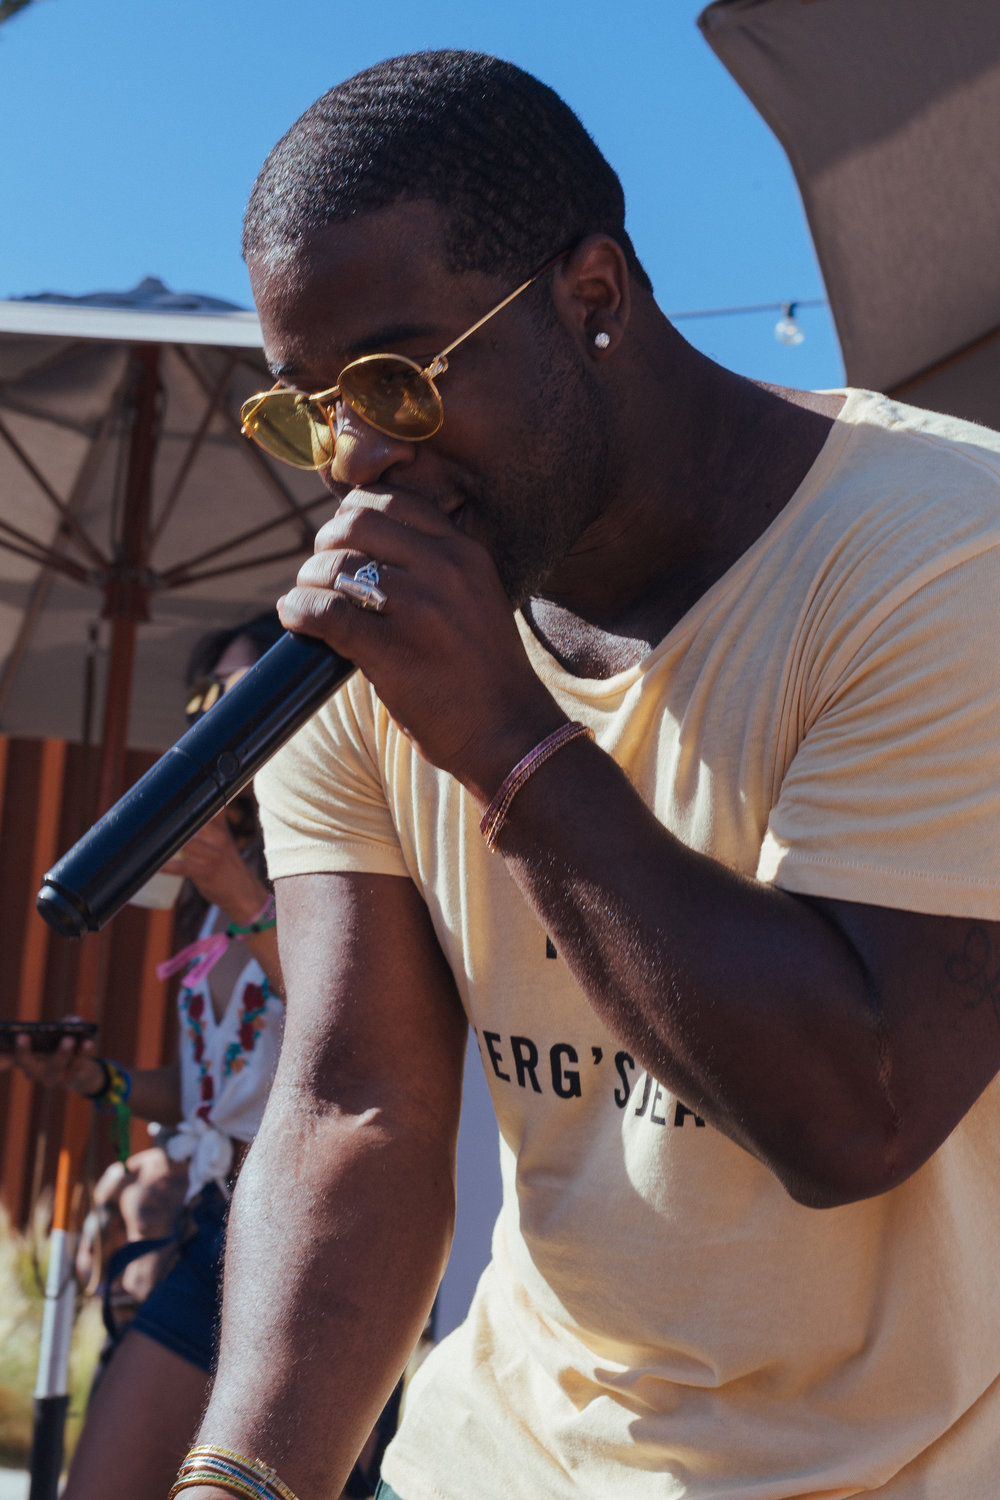 Asap-Ferg-Revolve-Party-Coachella-Weekend-1-2-casenruiz.jpg